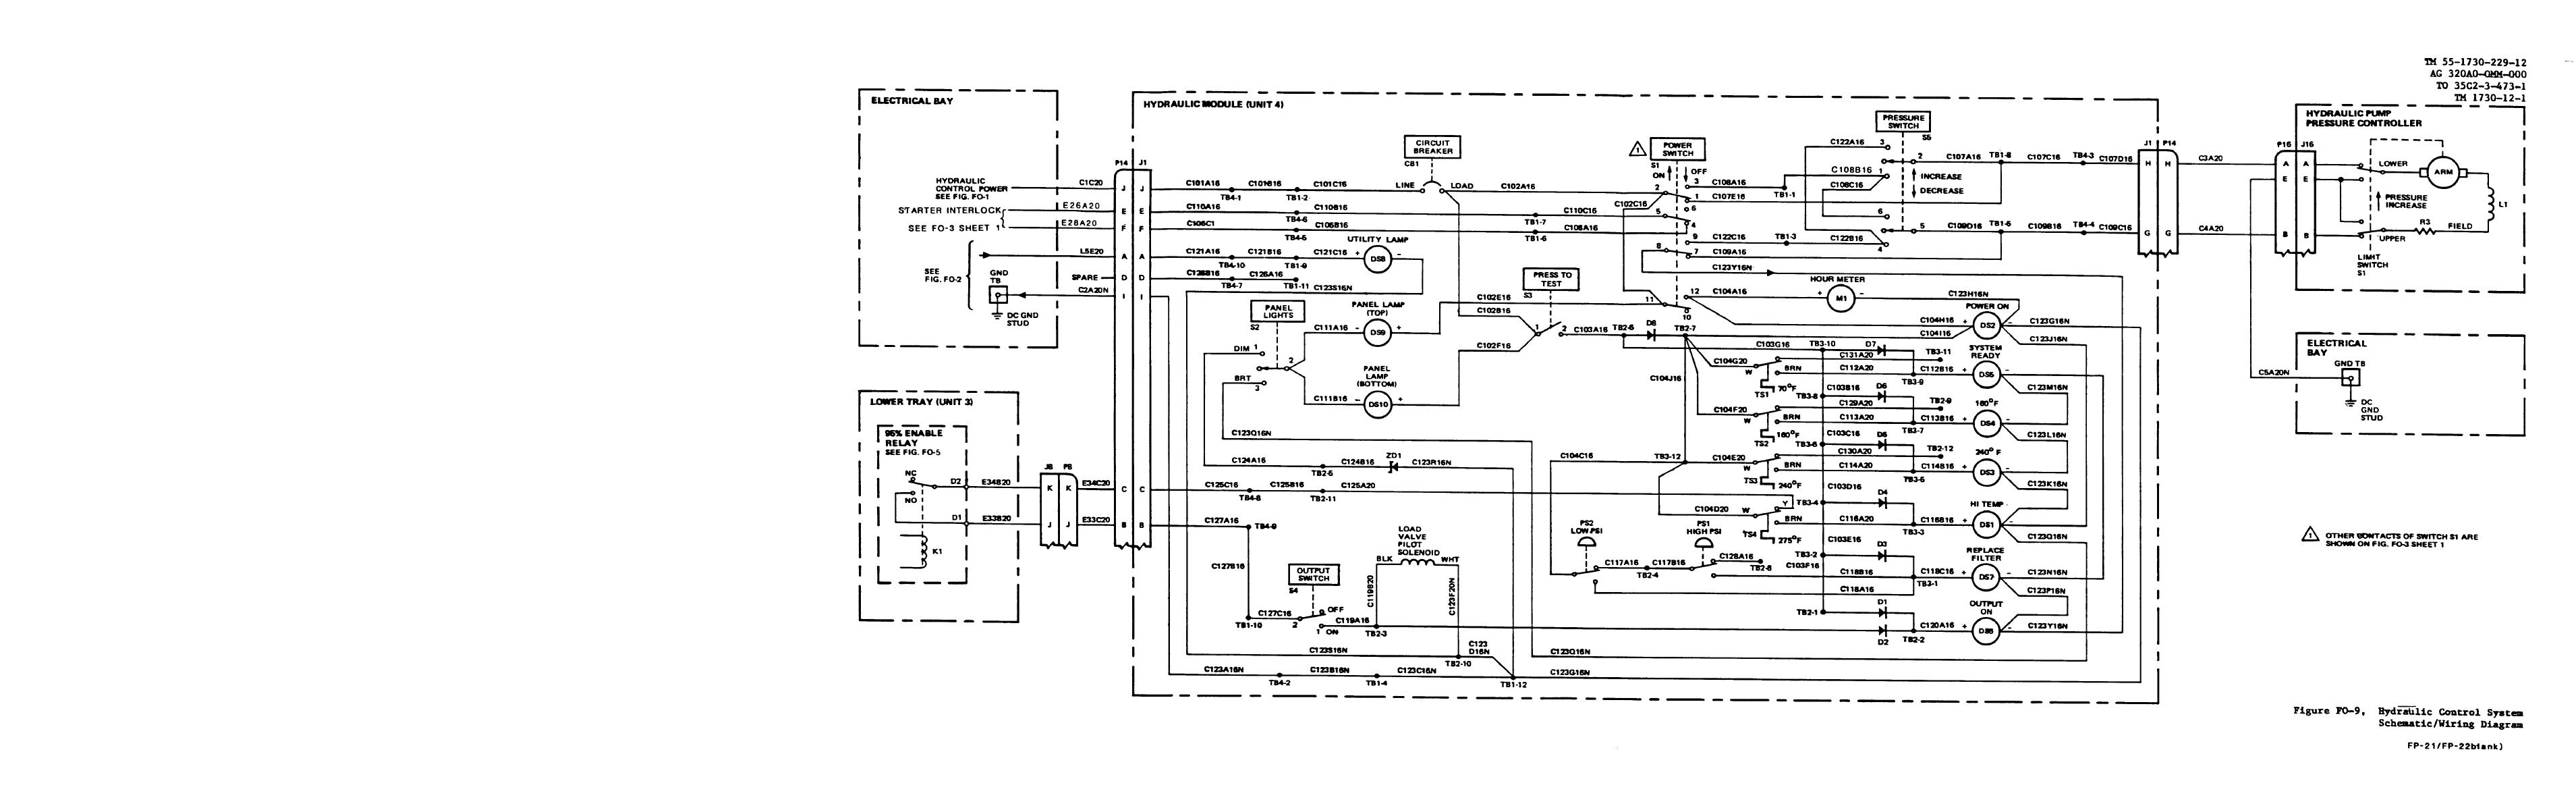 coriolis flow meter wiring diagram 3 way switch 4 lights of hydraulic system schematic get free image